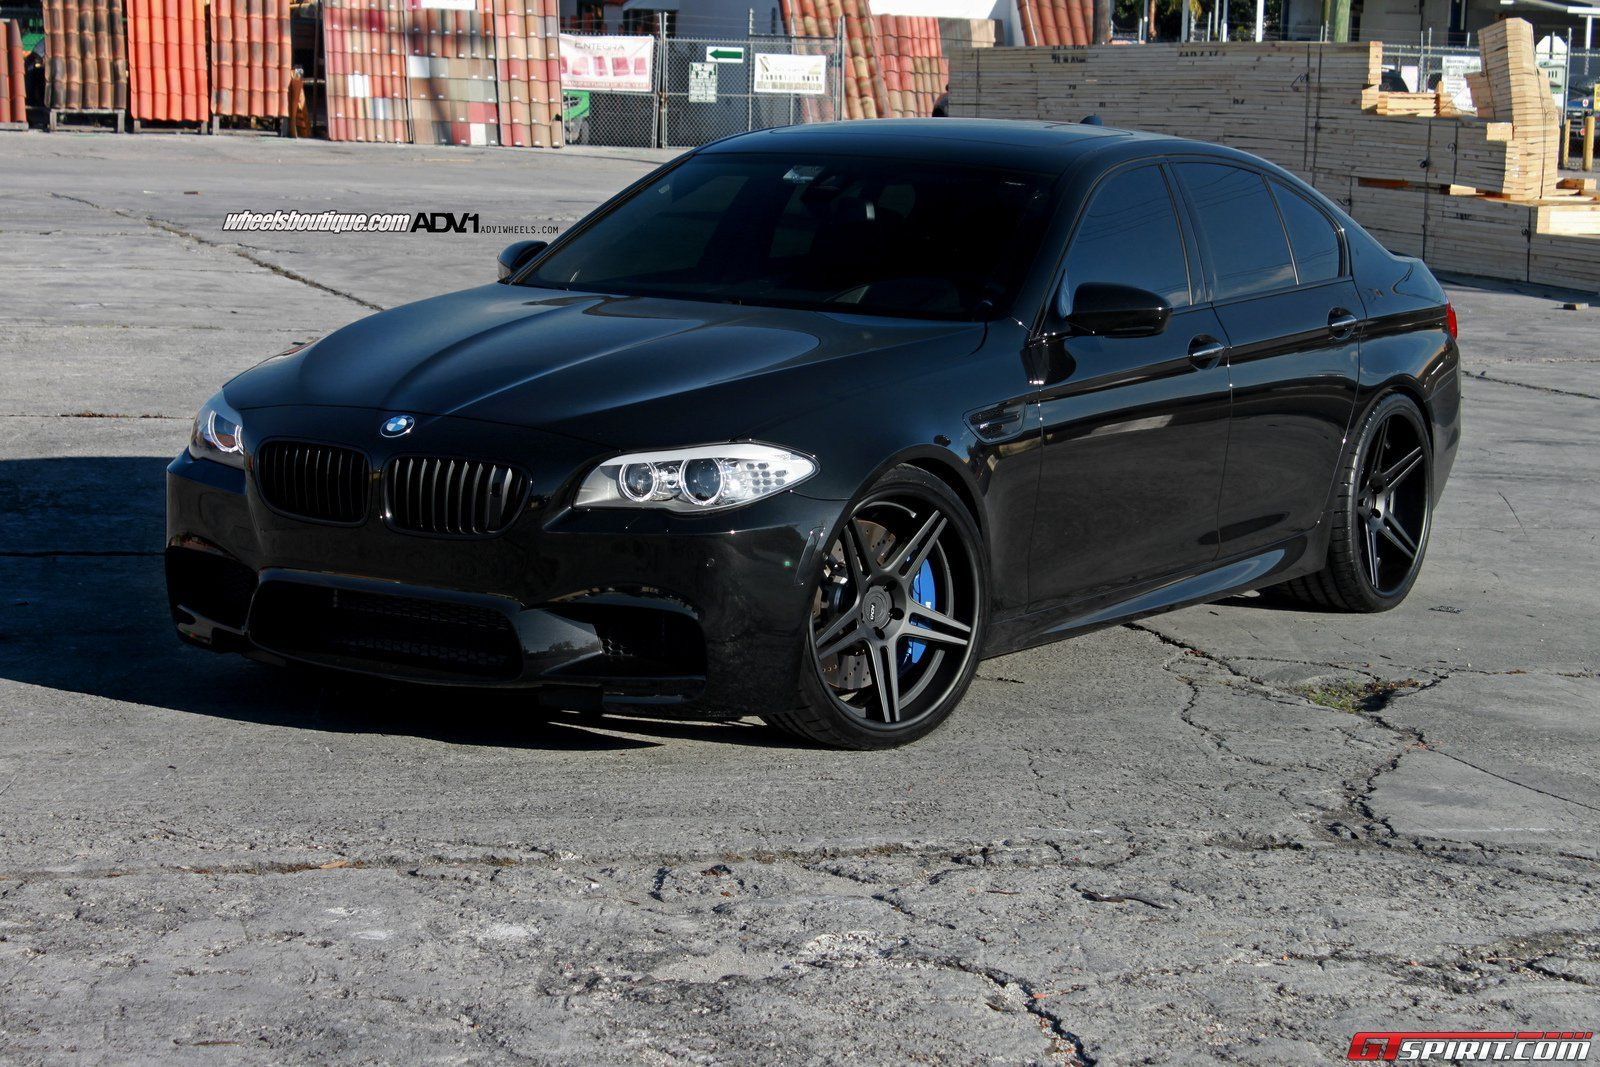 Black Bmw F10m M5 On 21 Inch On Adv 1 Wheels With Images Bmw